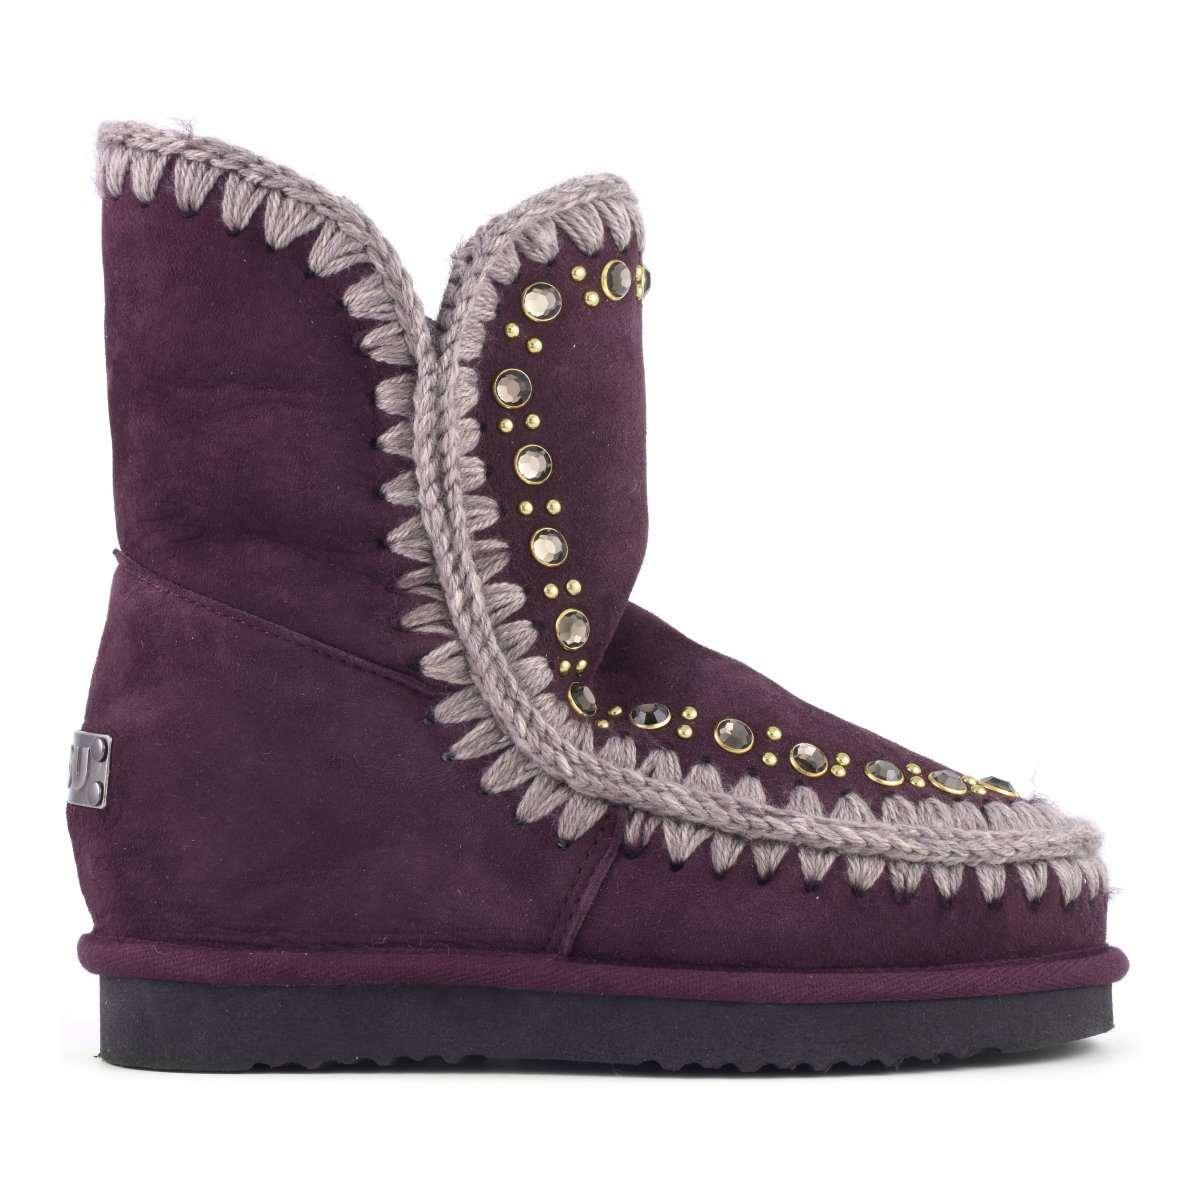 INNER WEDGE WITH STUDS & CRYSTALS